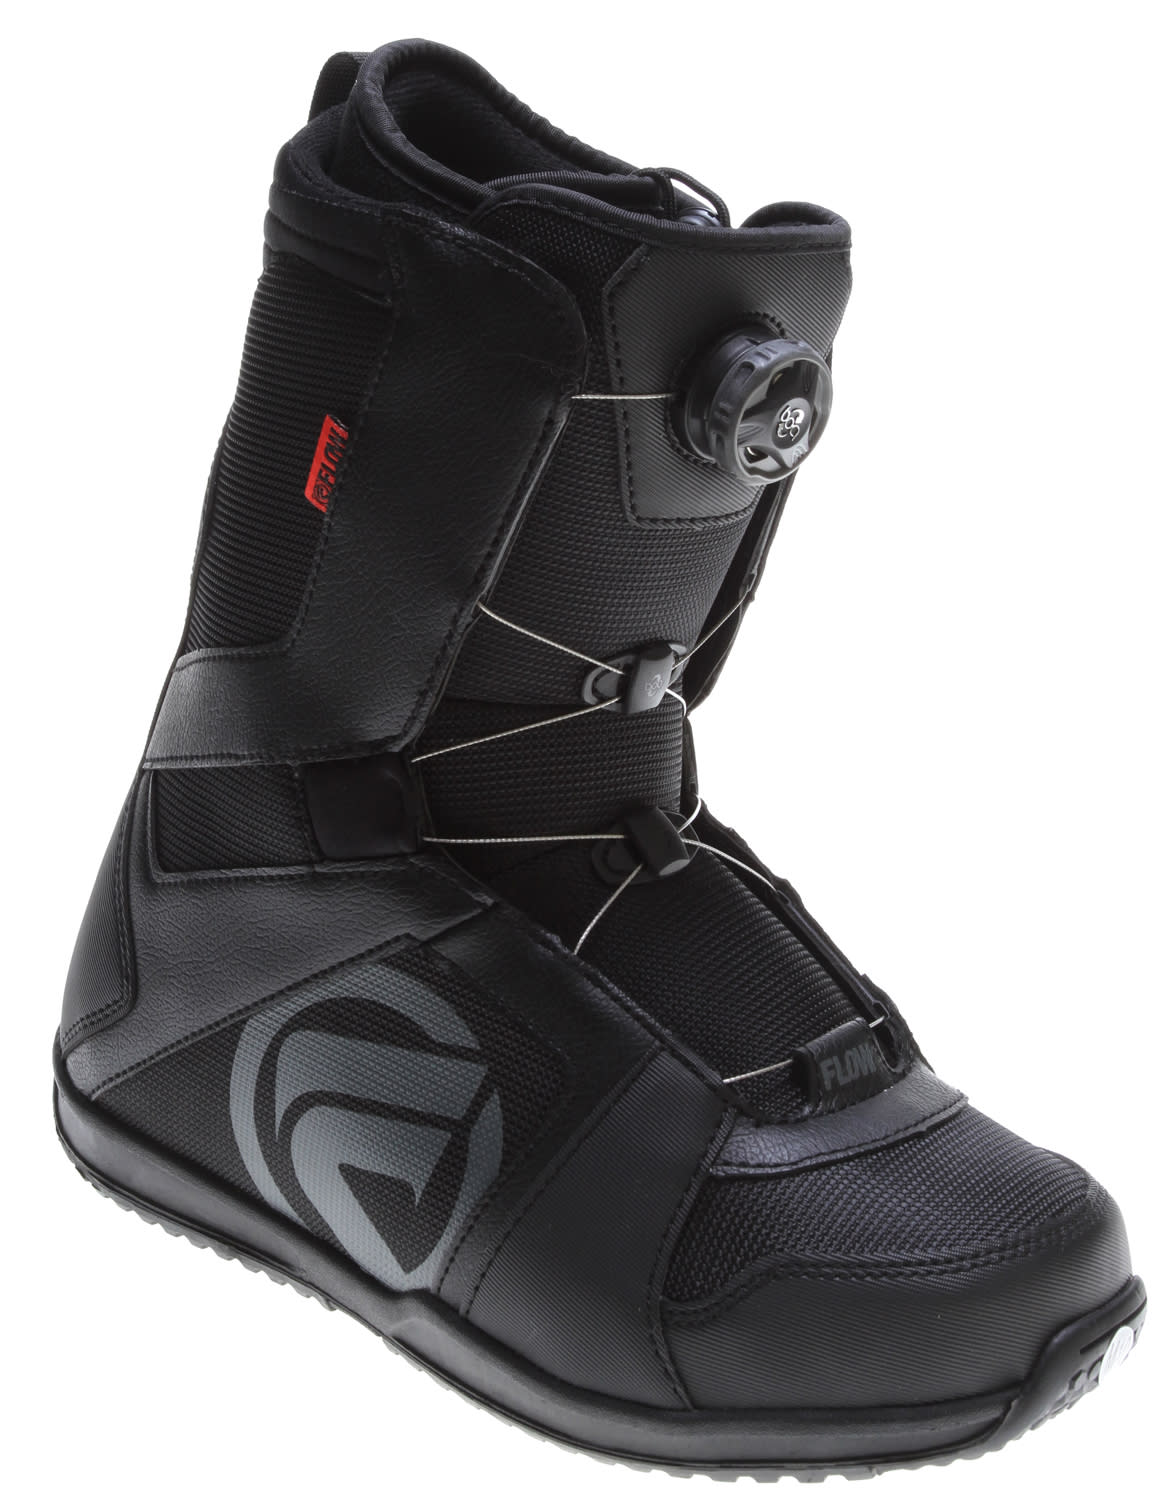 flow vega boa snowboard boots. Black Bedroom Furniture Sets. Home Design Ideas